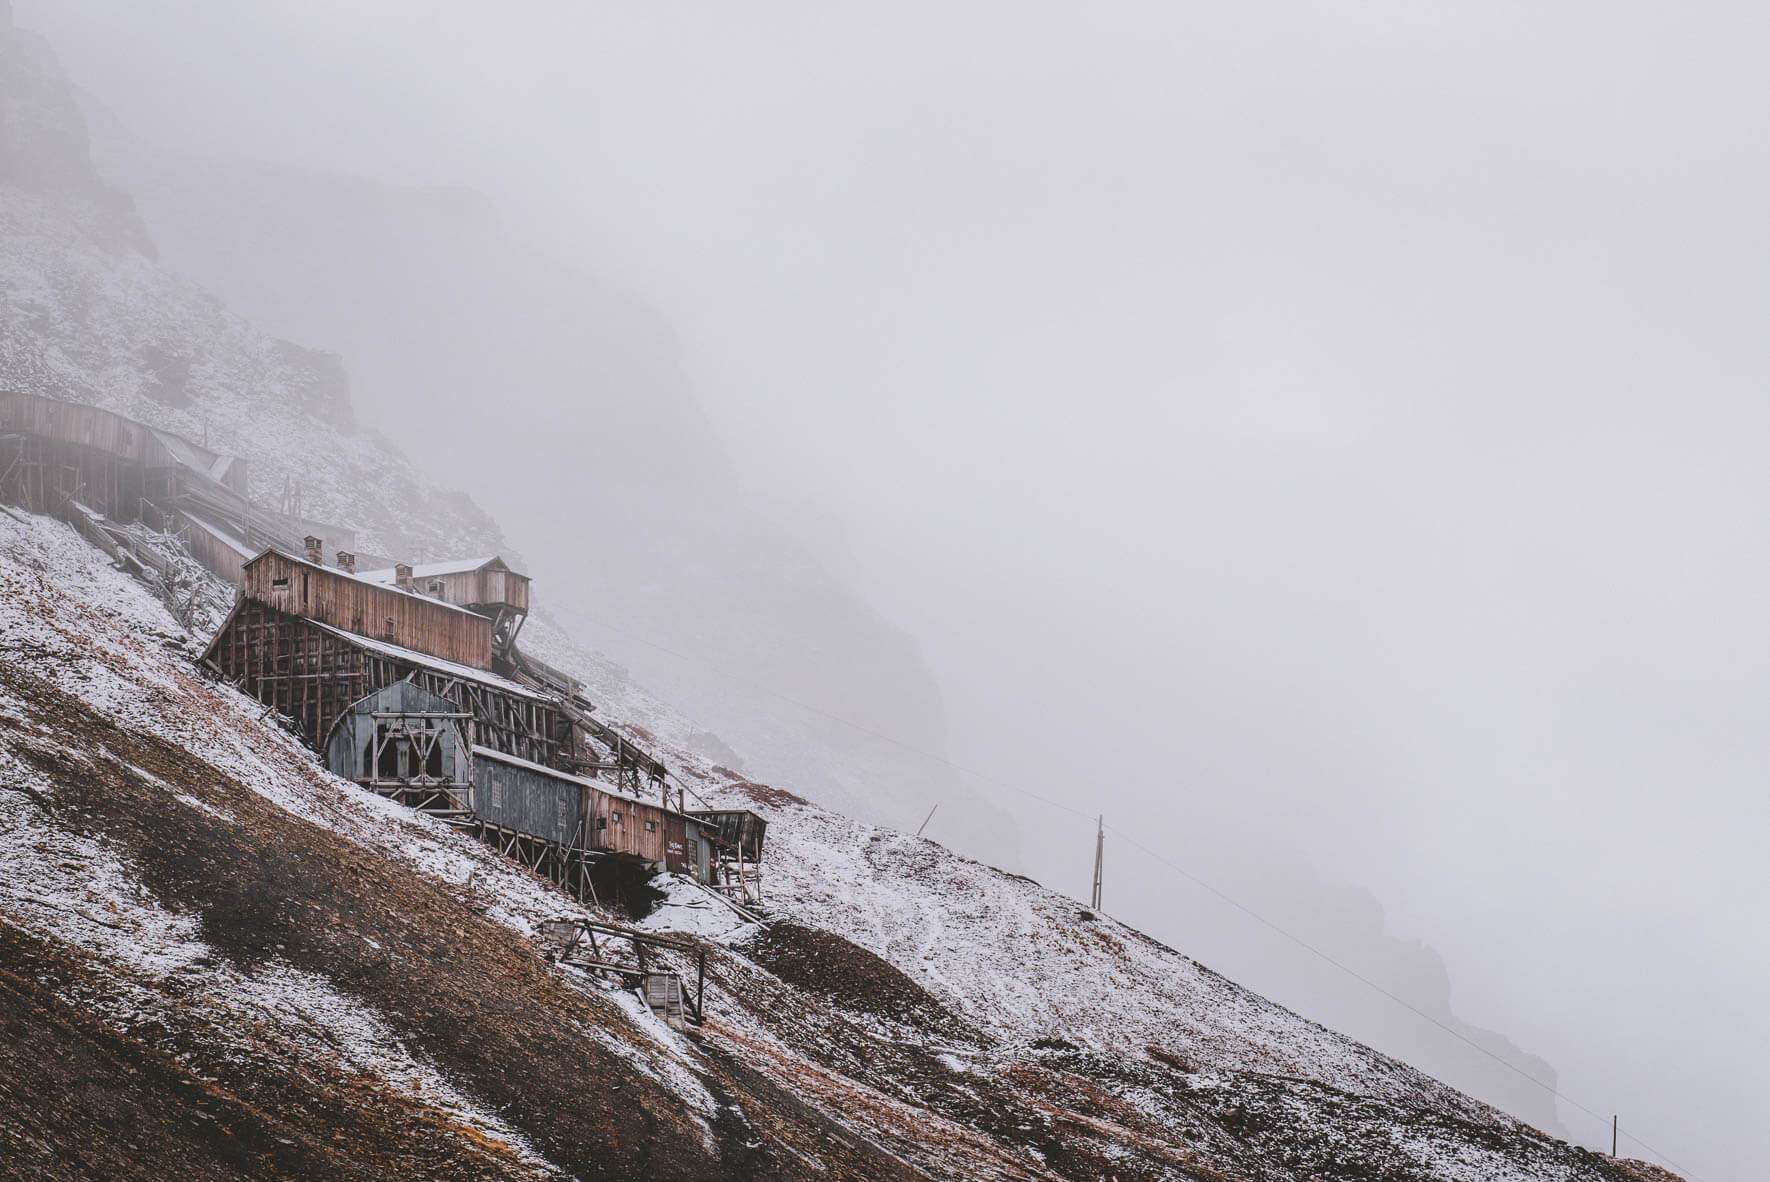 Abandoned coal mine #2 with snow in Longyearbyen, Svalbard